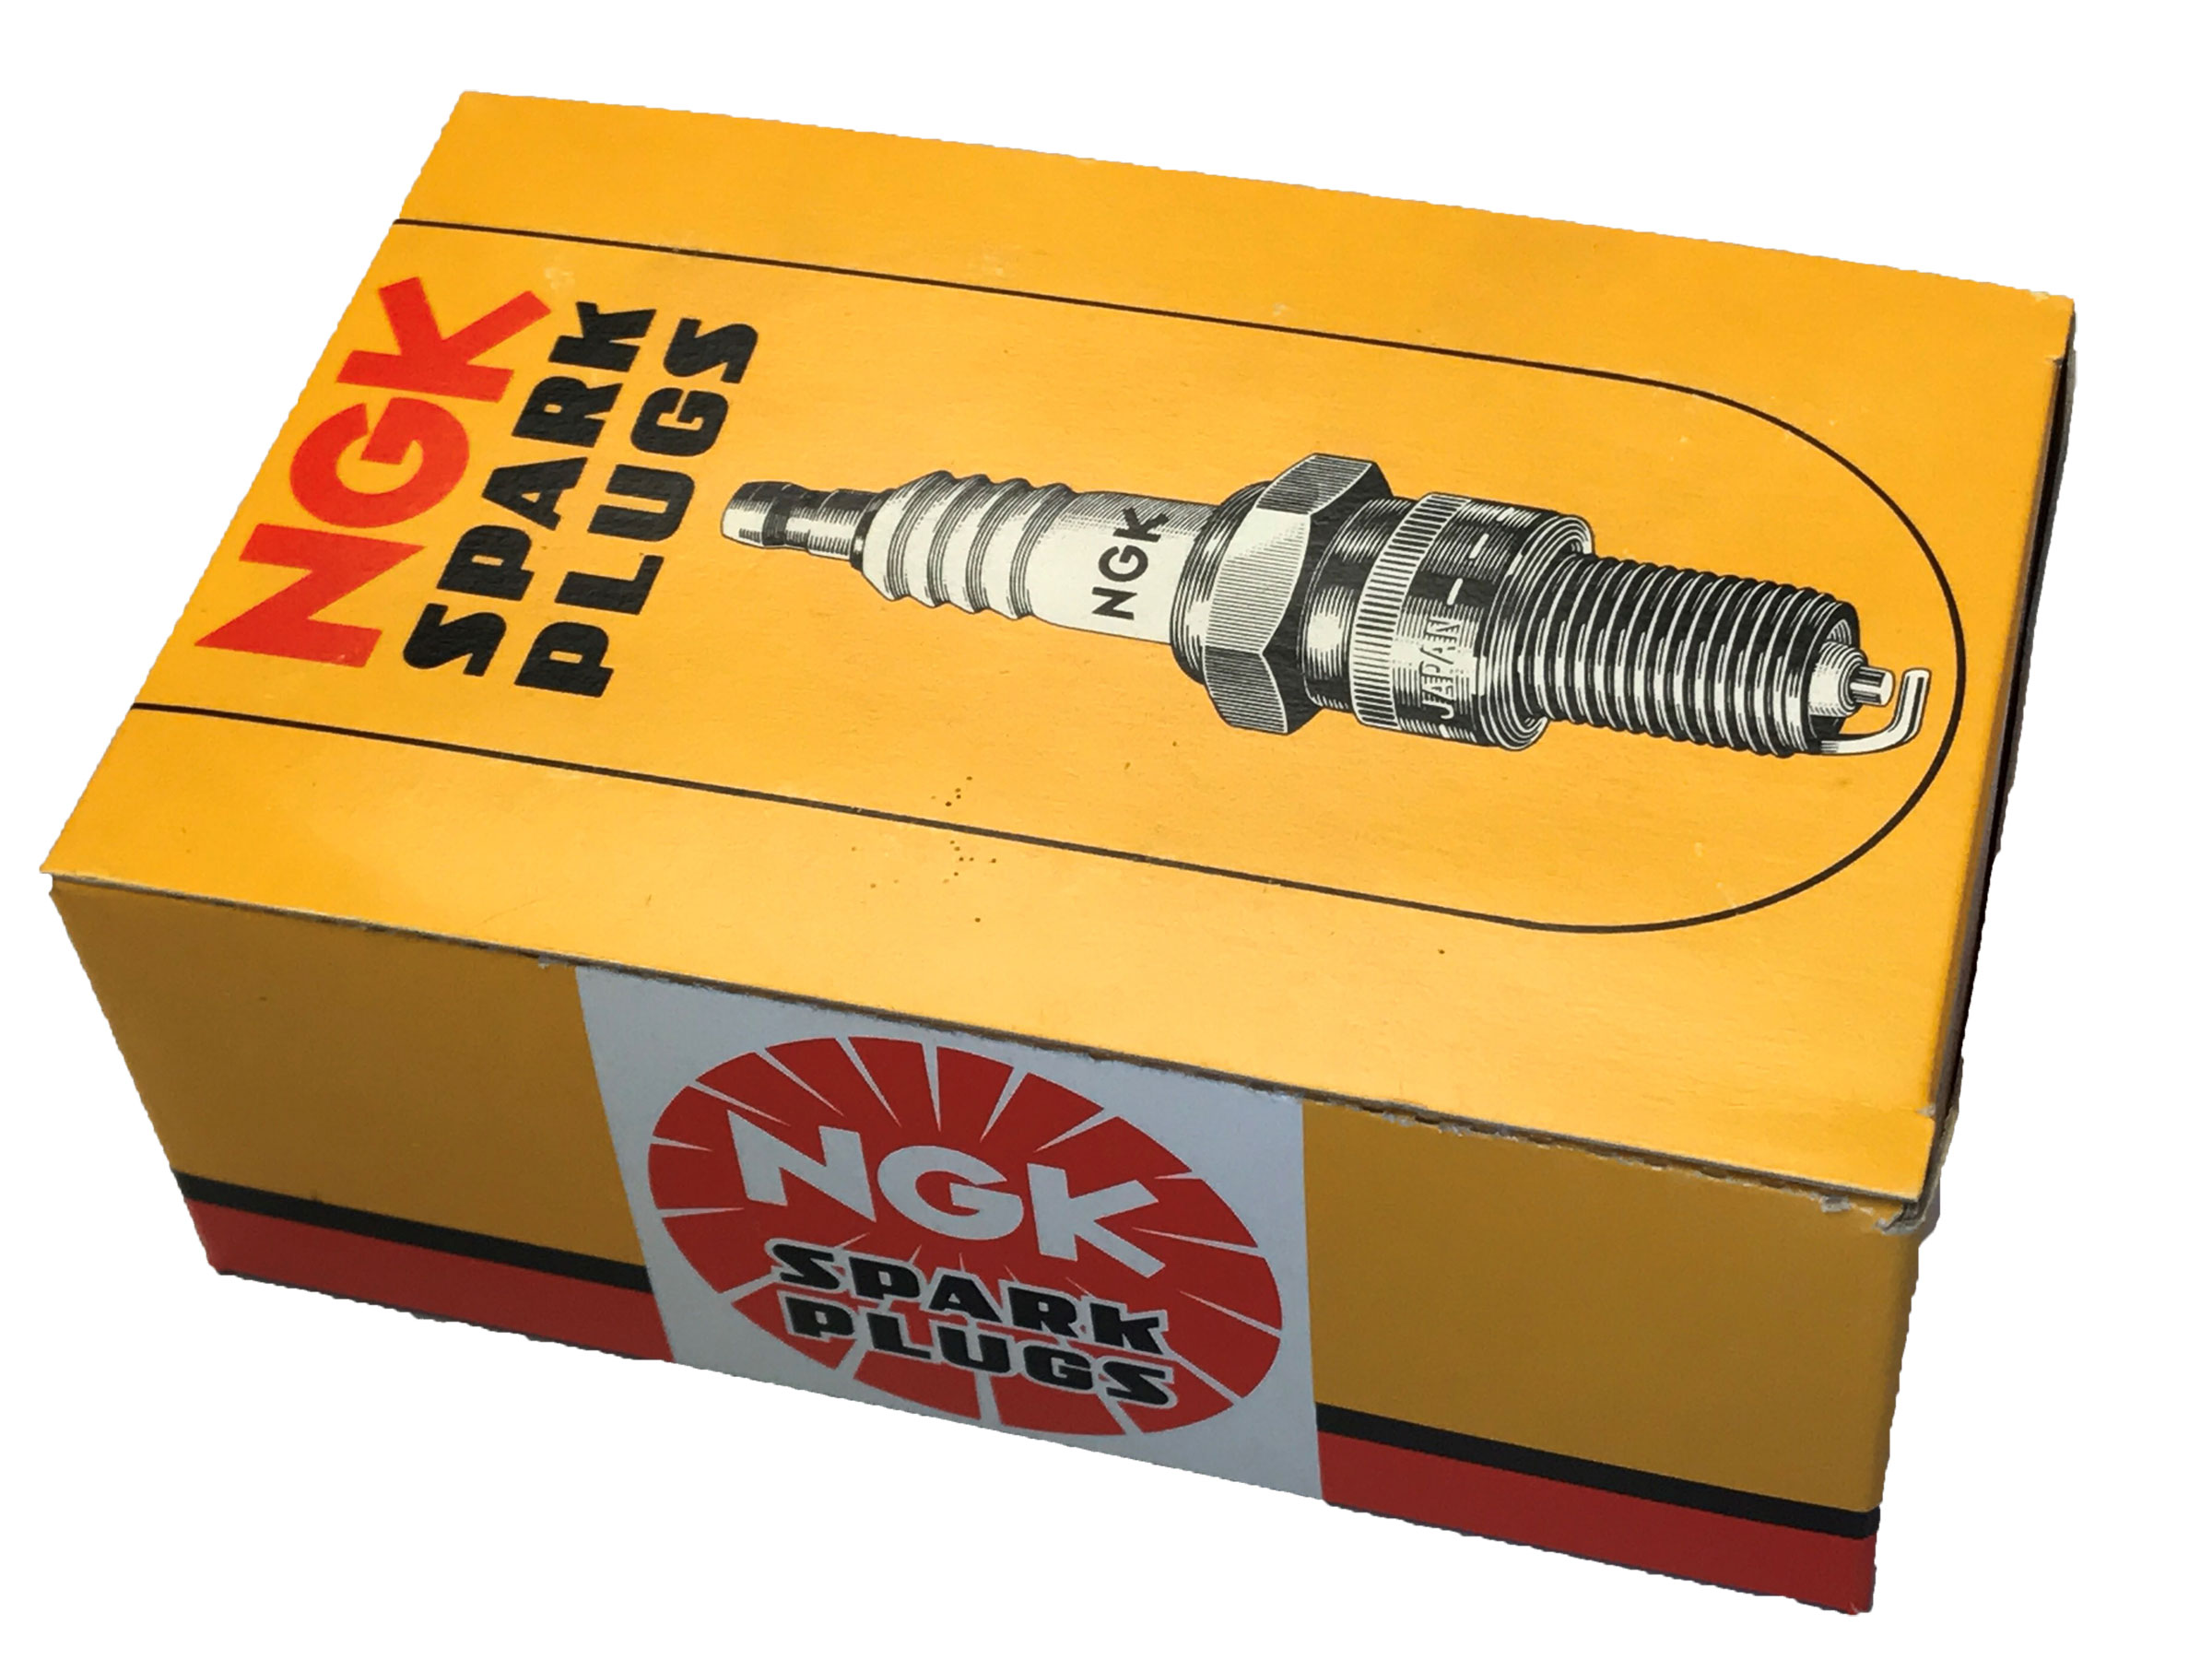 NGK Spark Plugs (B9HS) For Motorcycle - Vintage Box of 10